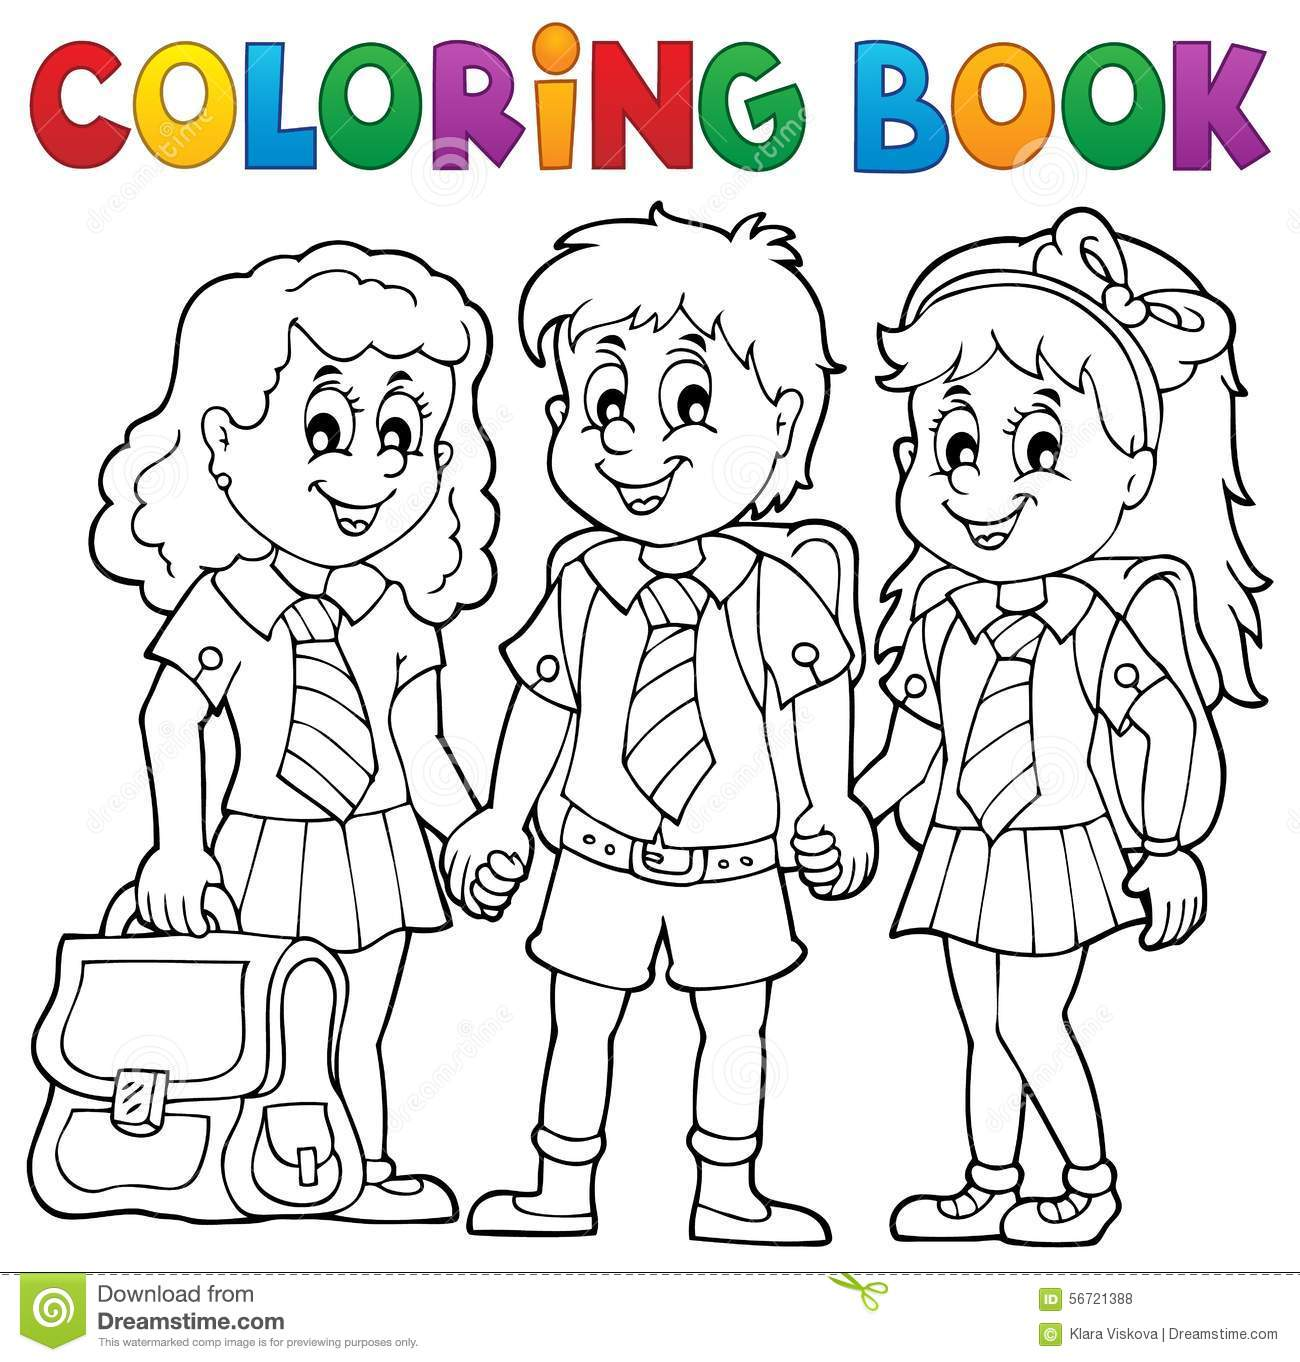 Coloring book school - Coloring Book With School Pupils